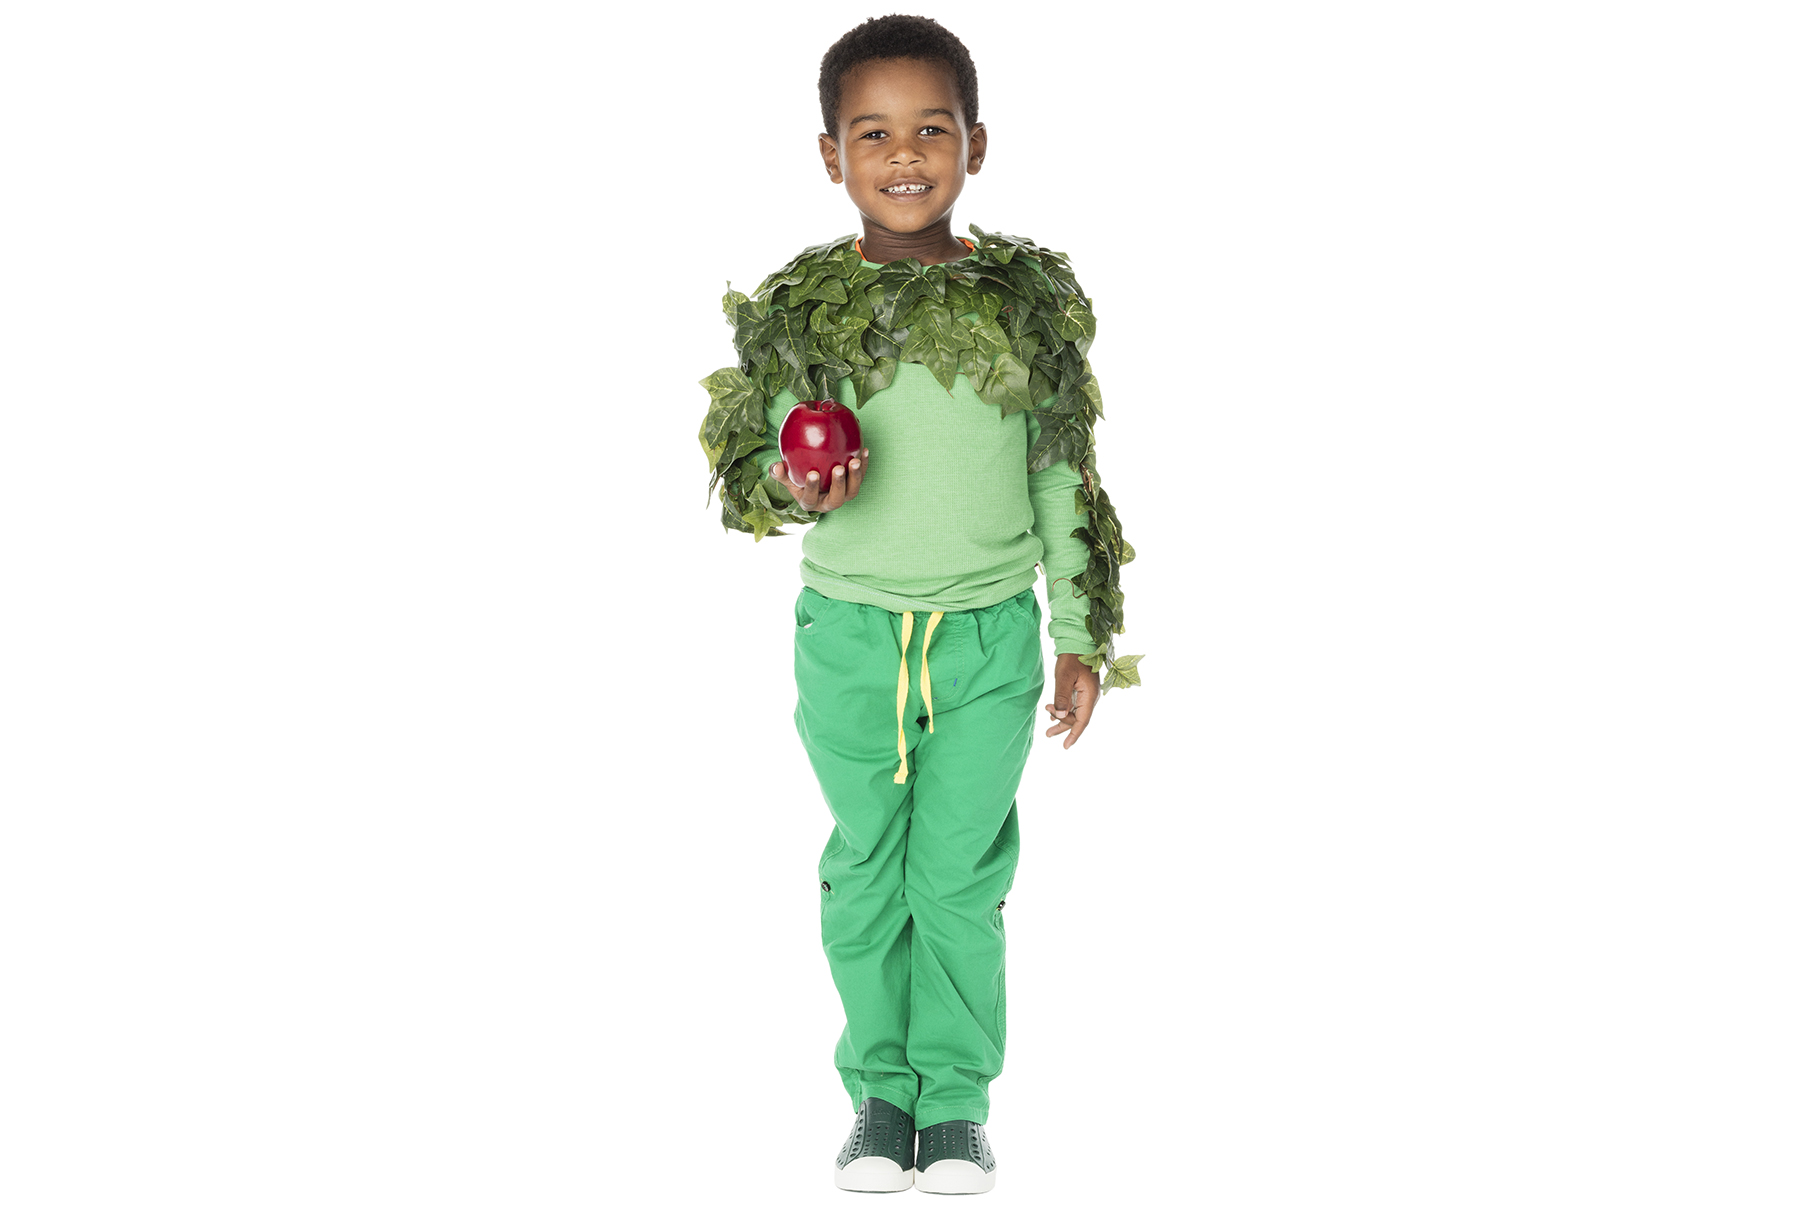 The Giving Tree Costume